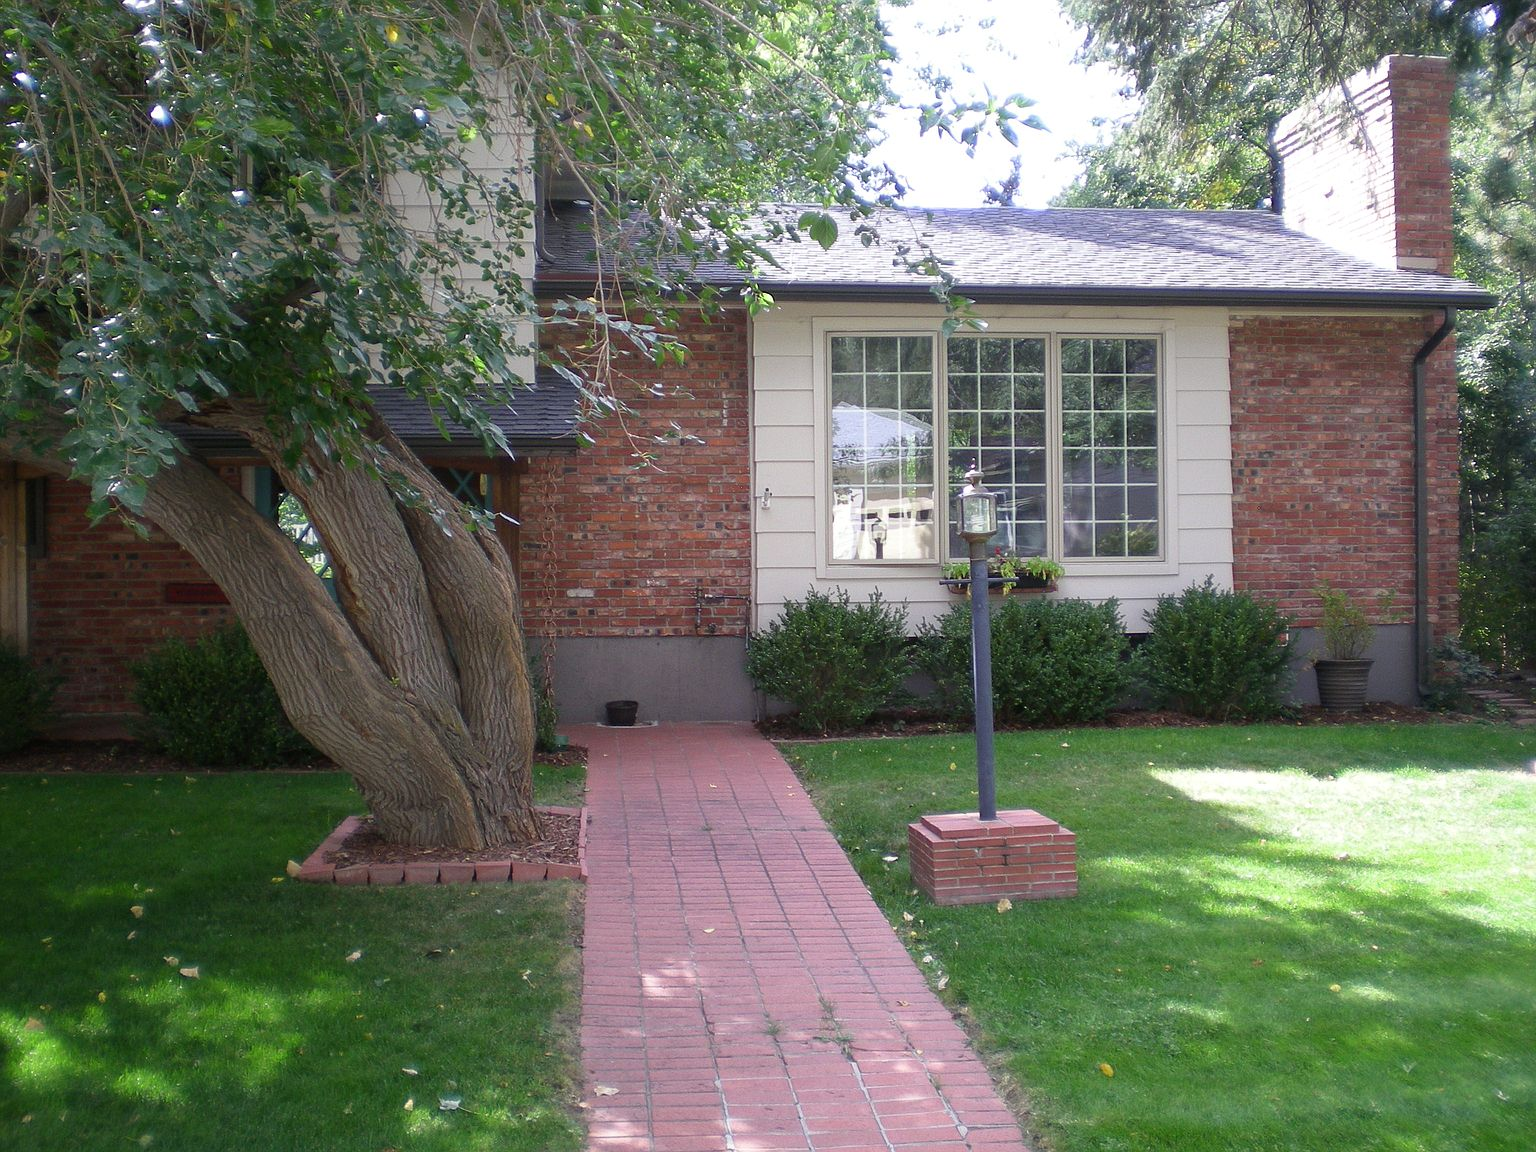 127 Wood Terrace Dr Colorado Springs Co 80903 Zillow